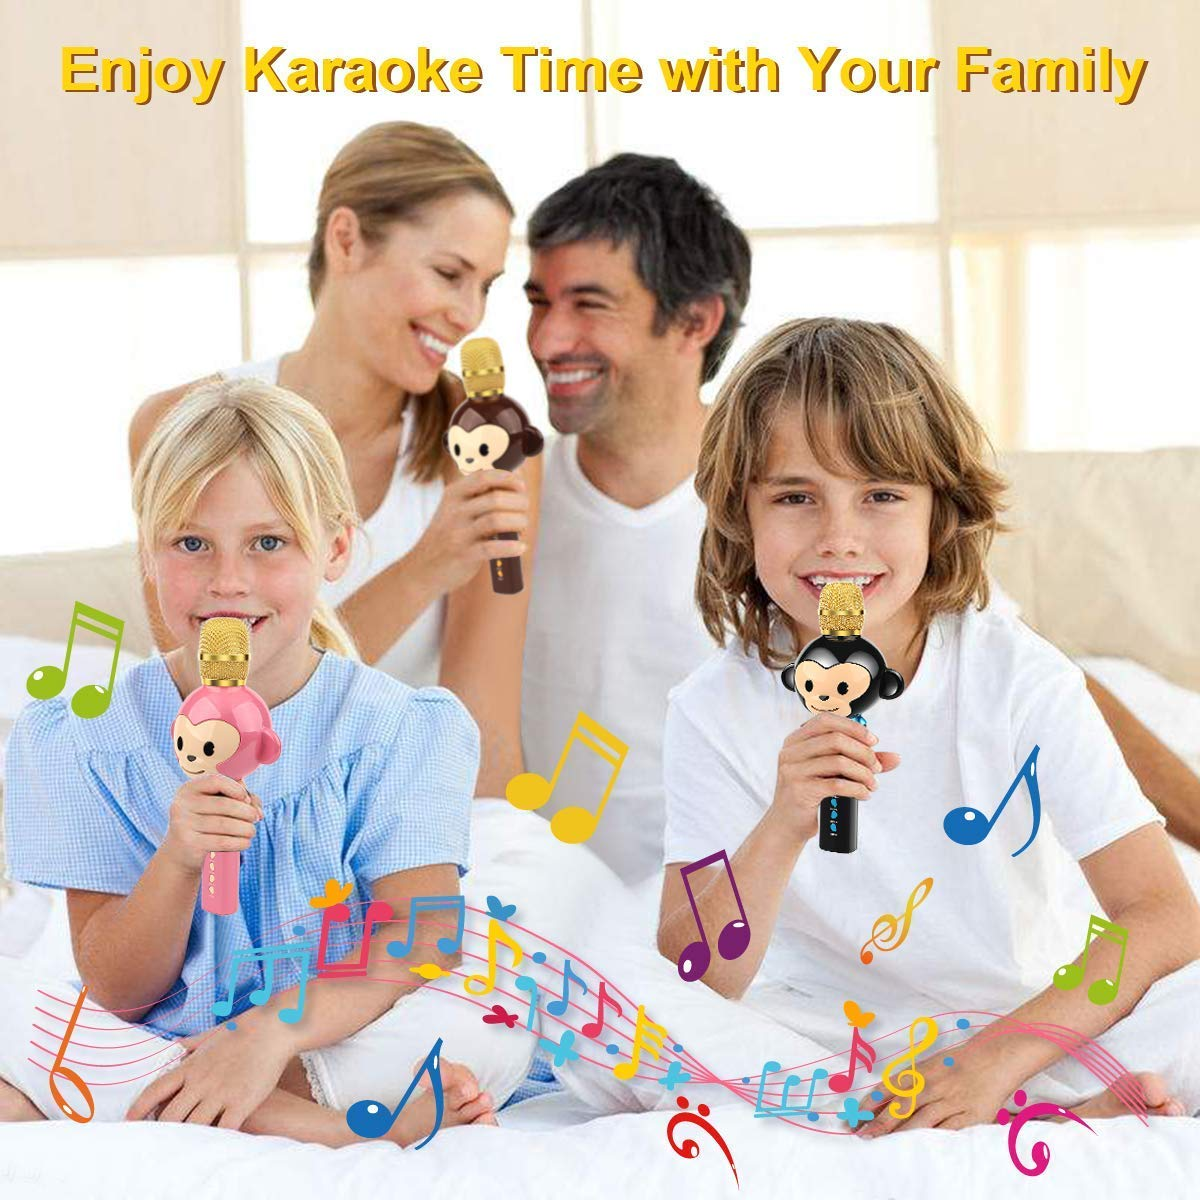 LingHui Kids Microphone Wireless Bluetooth Karaoke Microphone , 3-in-1 Portable Handheld Karaoke Mic Home Party Birthday Speaker Machine for iPhone/Android/iPad/Sony,PC and All Smartphone (Pink) by LingHui (Image #6)